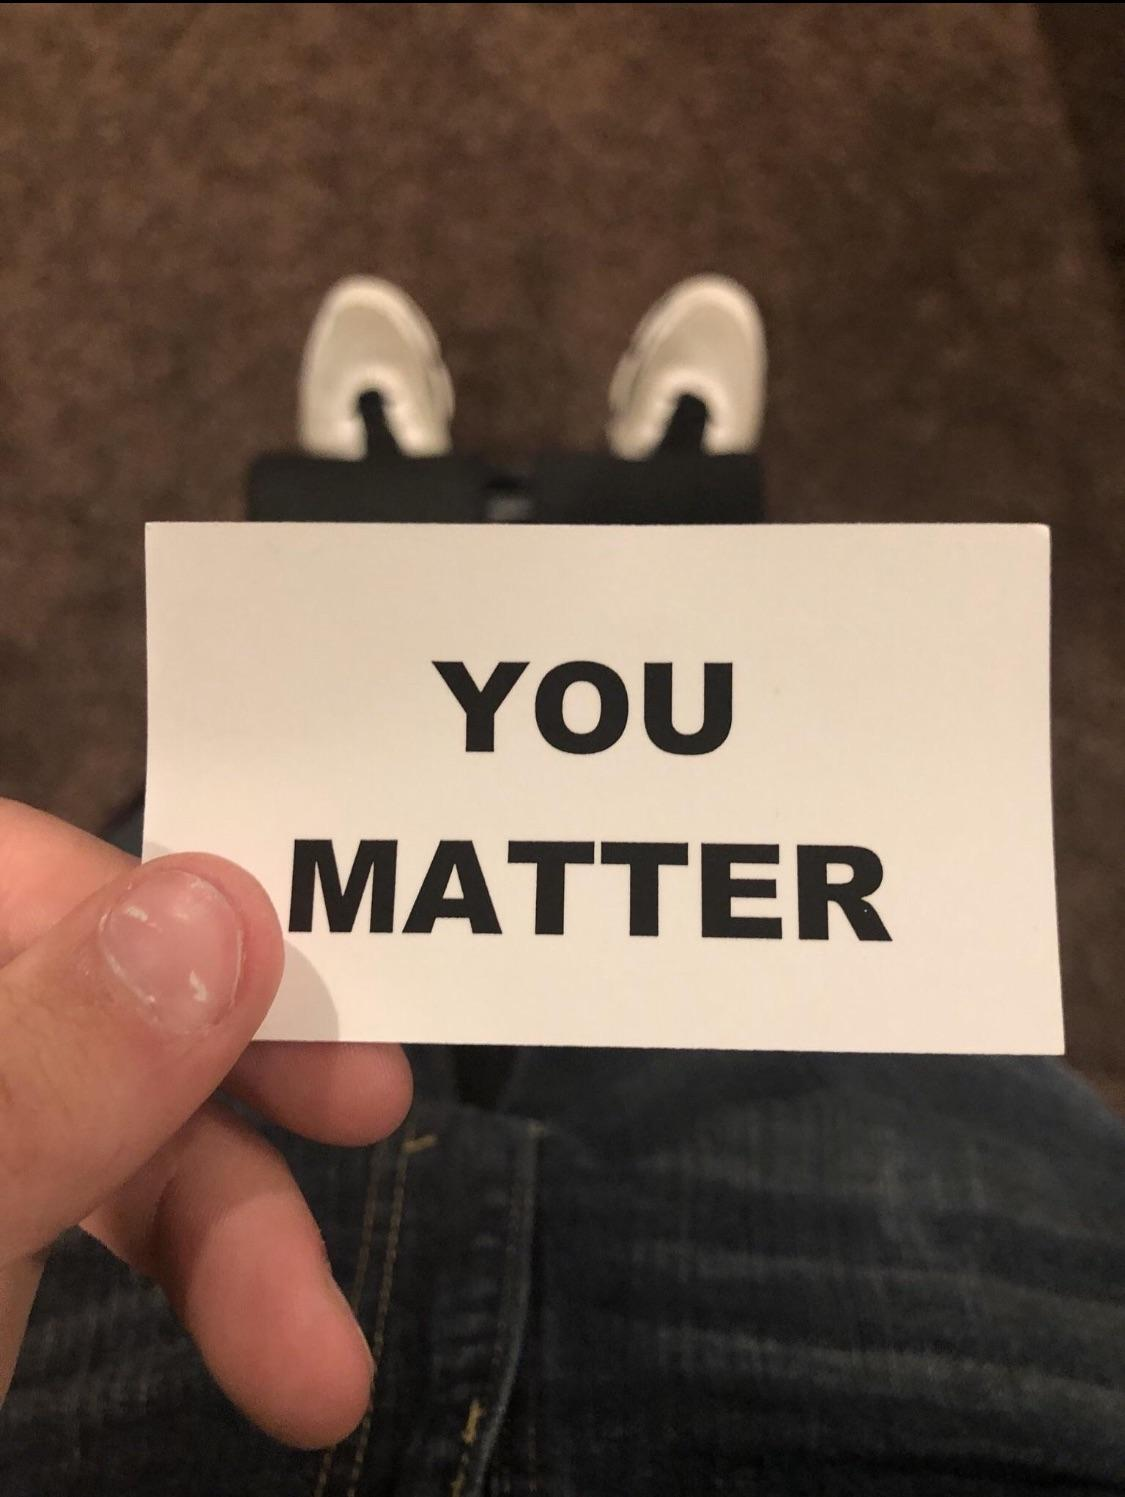 [Image] Some lady was handing these out during Halloween along with candy.